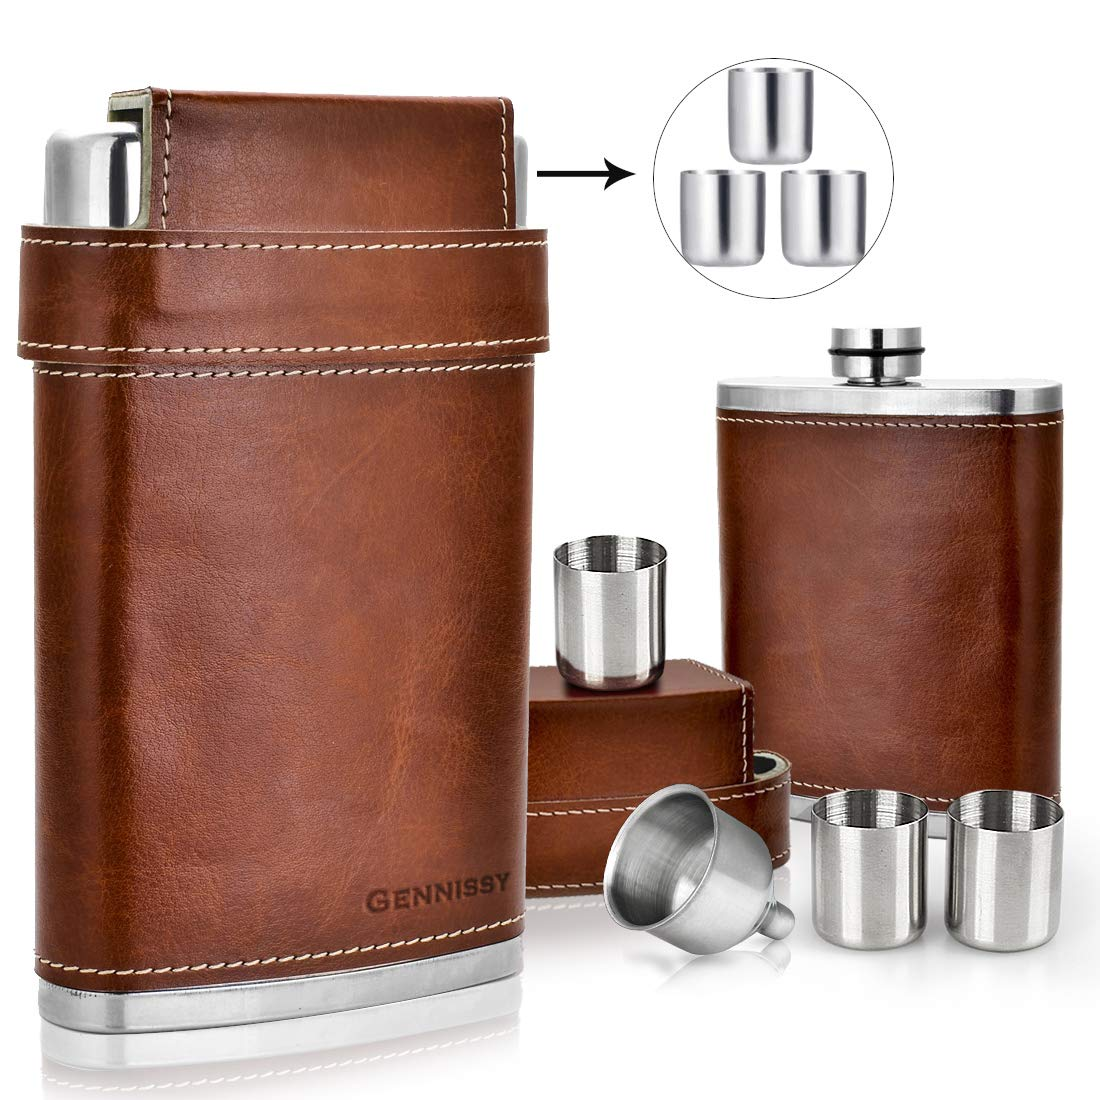 GENNISSY 304 18/8 Stainless Steel 8oz Flask - Brown Leather with 3 Cups and Funnel 100% Leak Proof by GENNISSY